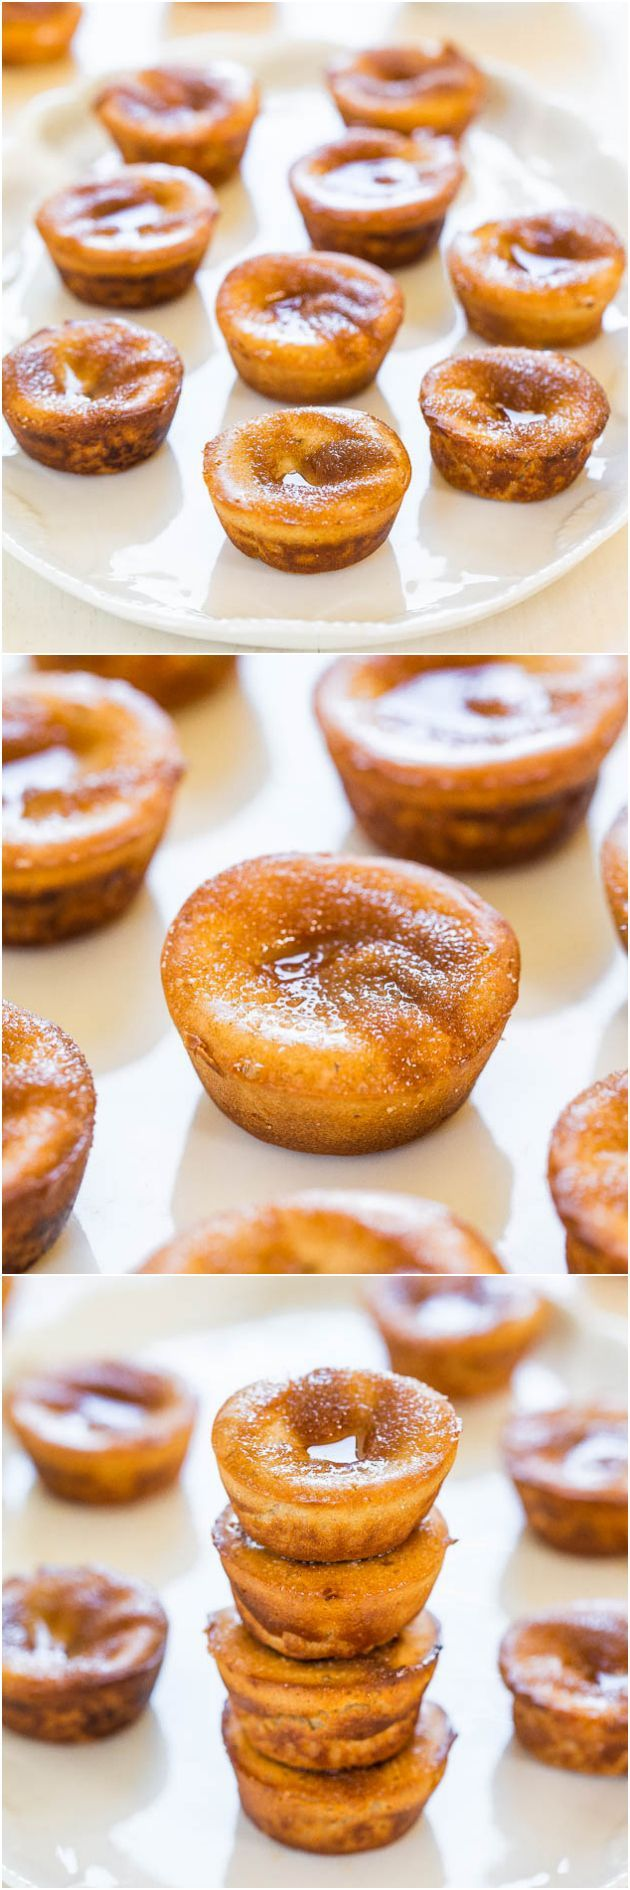 Easy convert to thermomix - Mini Cinnamon Sugar Popovers - They taste like mini donuts and the blender batter is the easiest ever! No popover pan required!